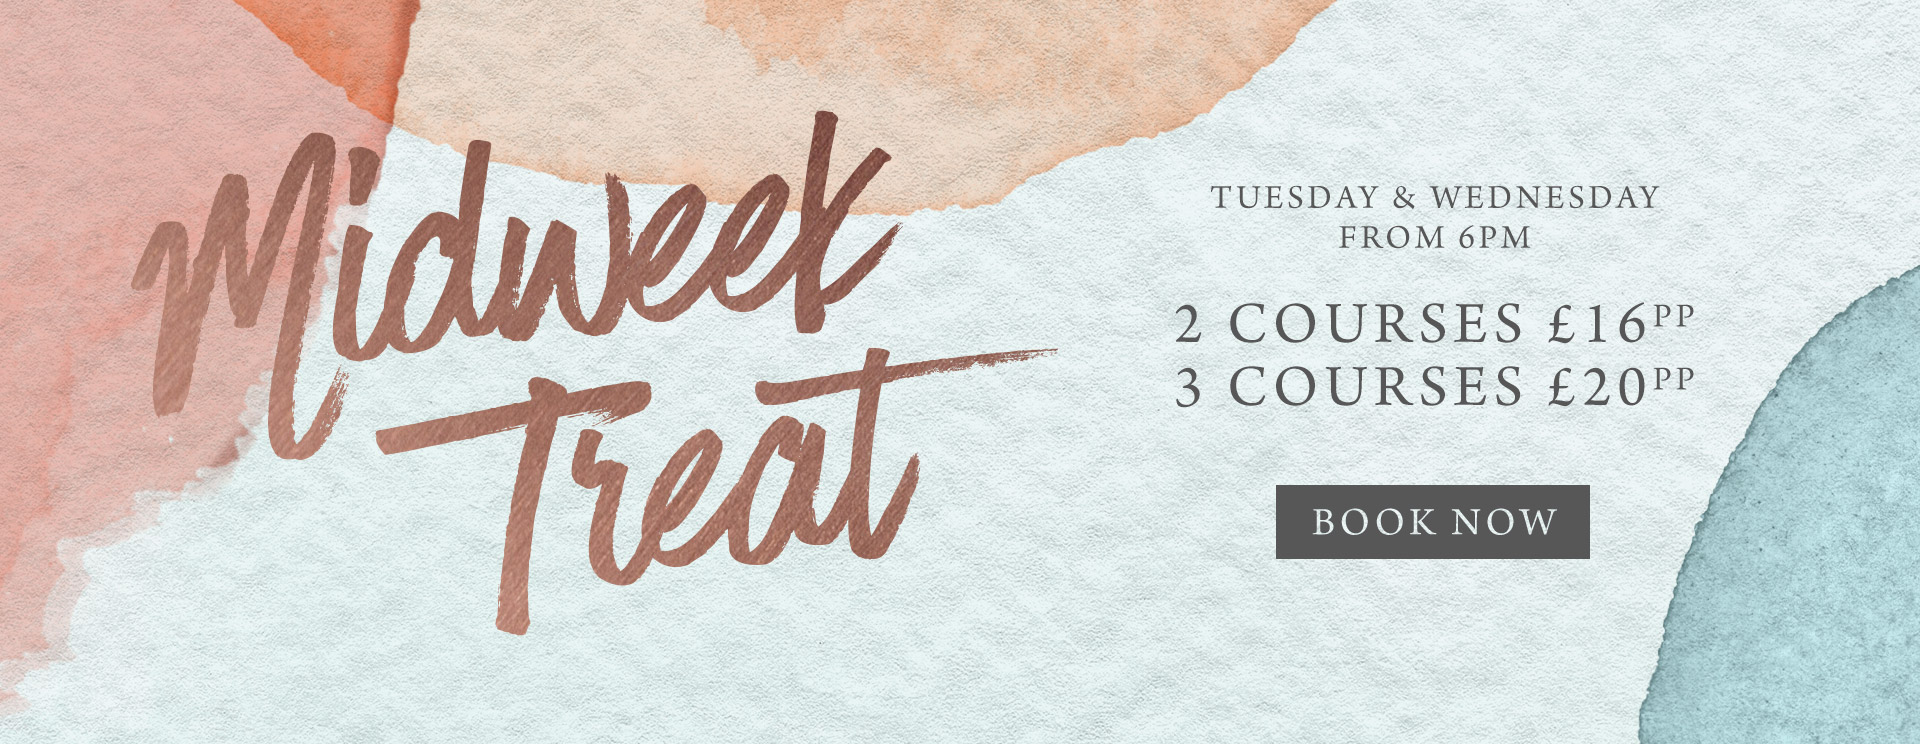 Midweek treat at The Fox & Hounds - Book now